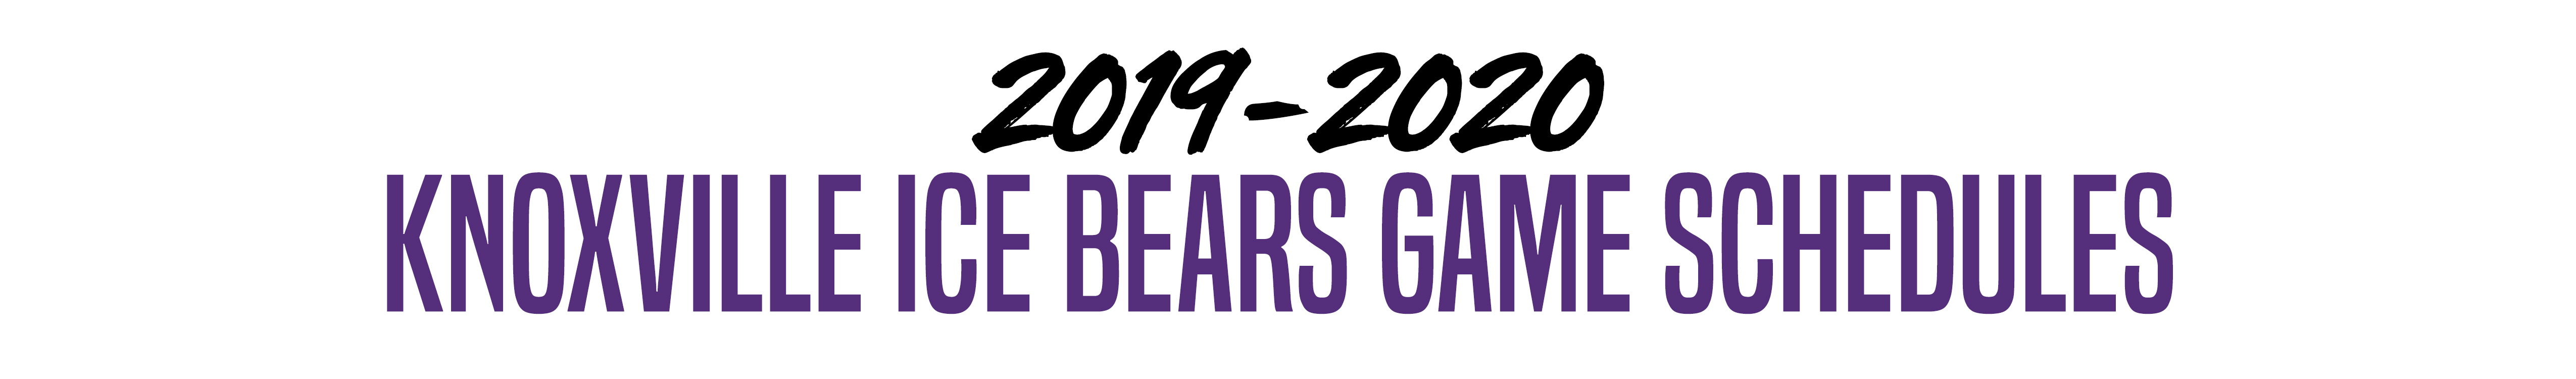 Ice Bears Schedule 2020 Knoxville Ice Bears: Download Schedule